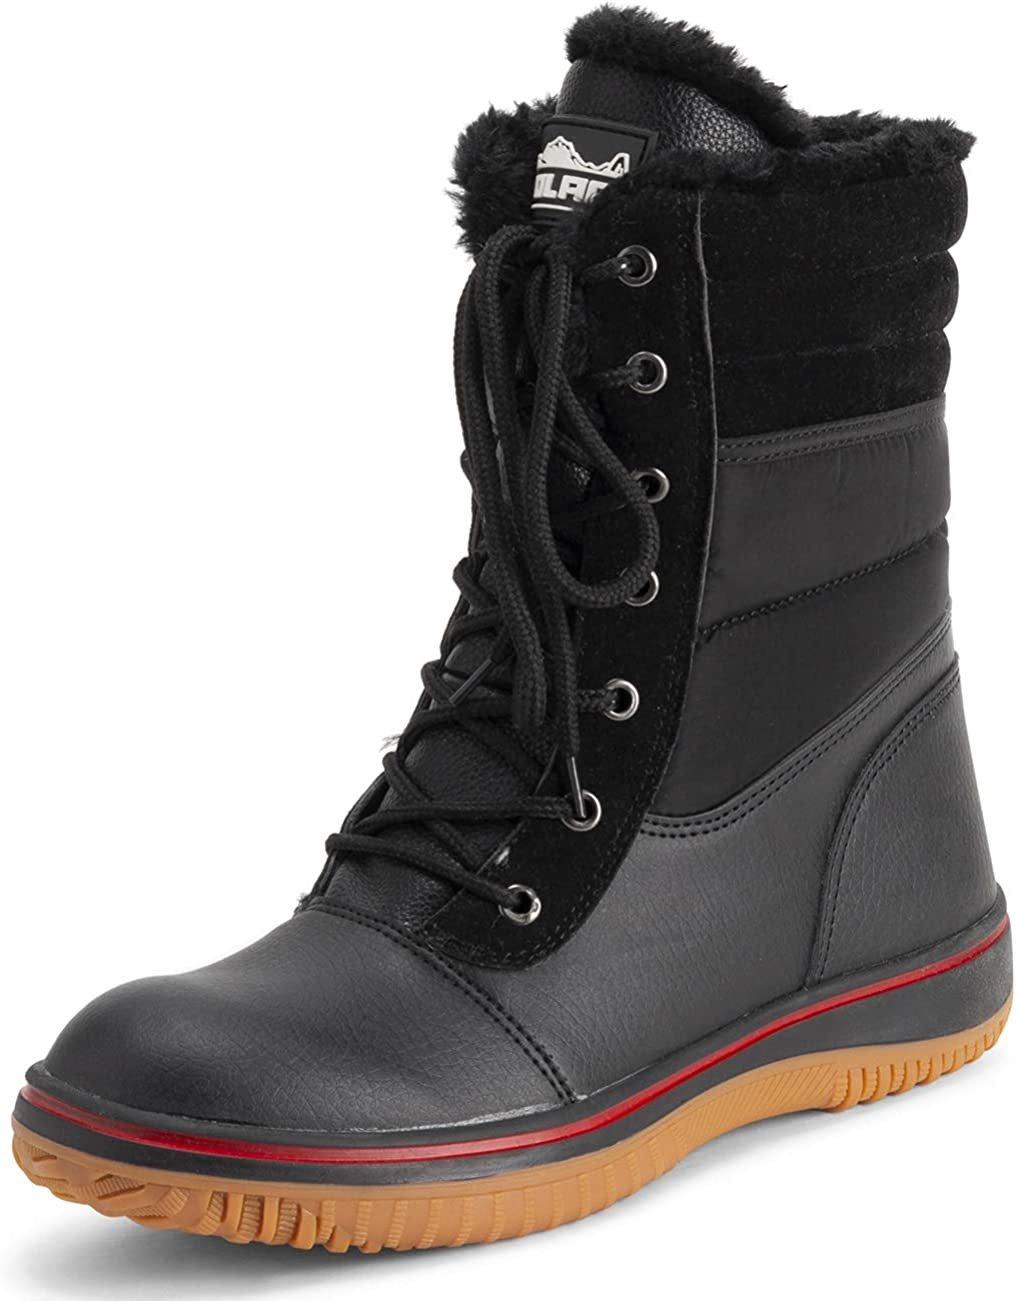 POLAR Womens Memory Foam Contrast Line Rubber Gum Outsole Waterproof Padded Collar Thermal Snow Boots